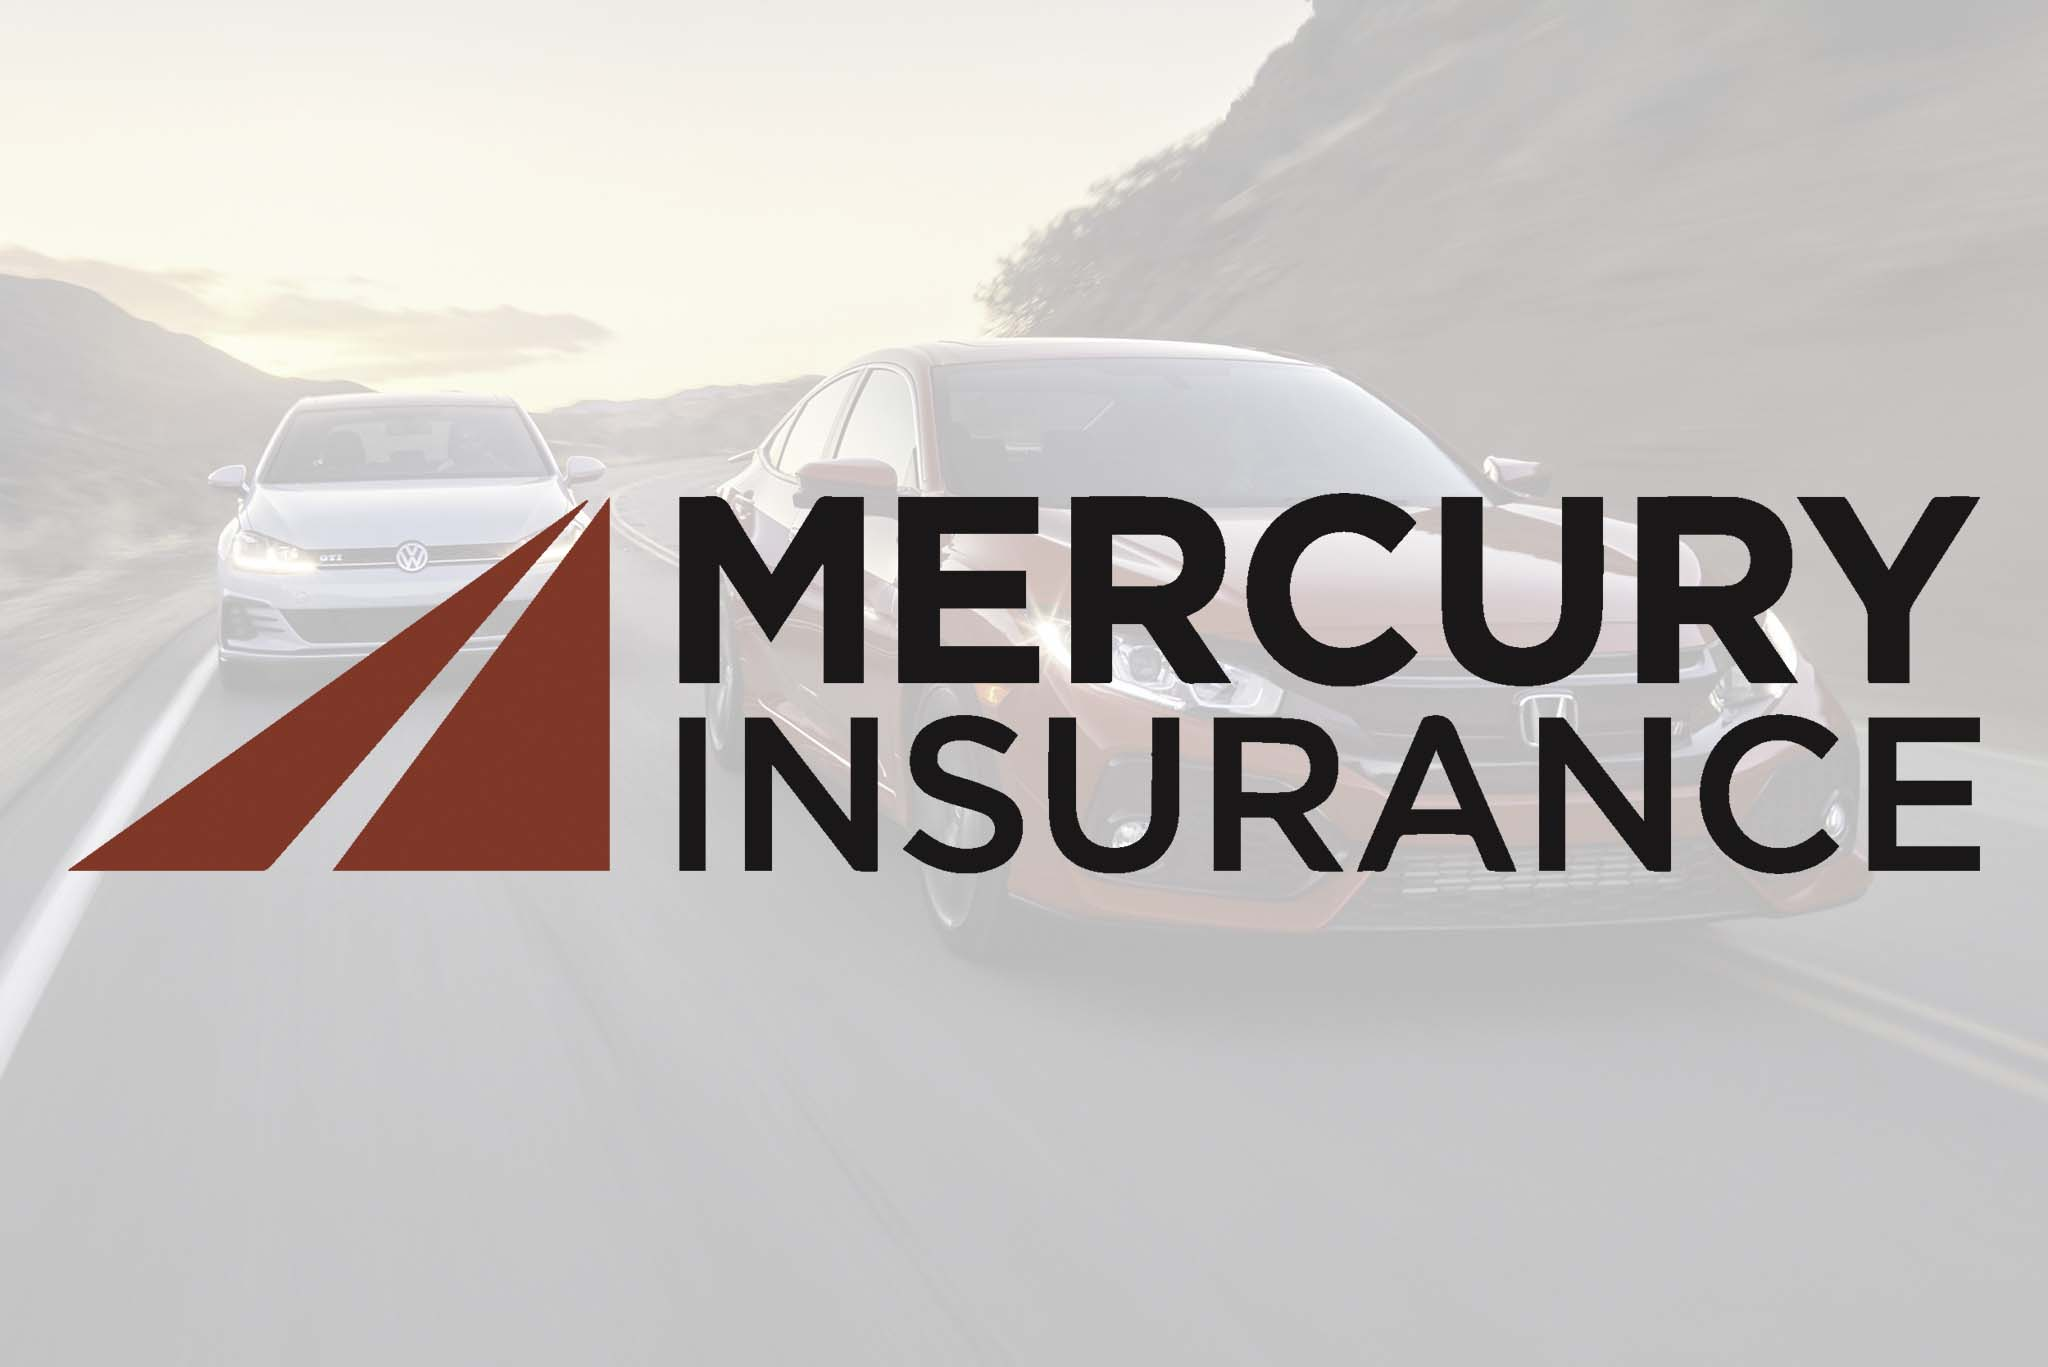 Mercury Auto Insurance. An in-depth review of policies, coverage, and customer satisfaction.